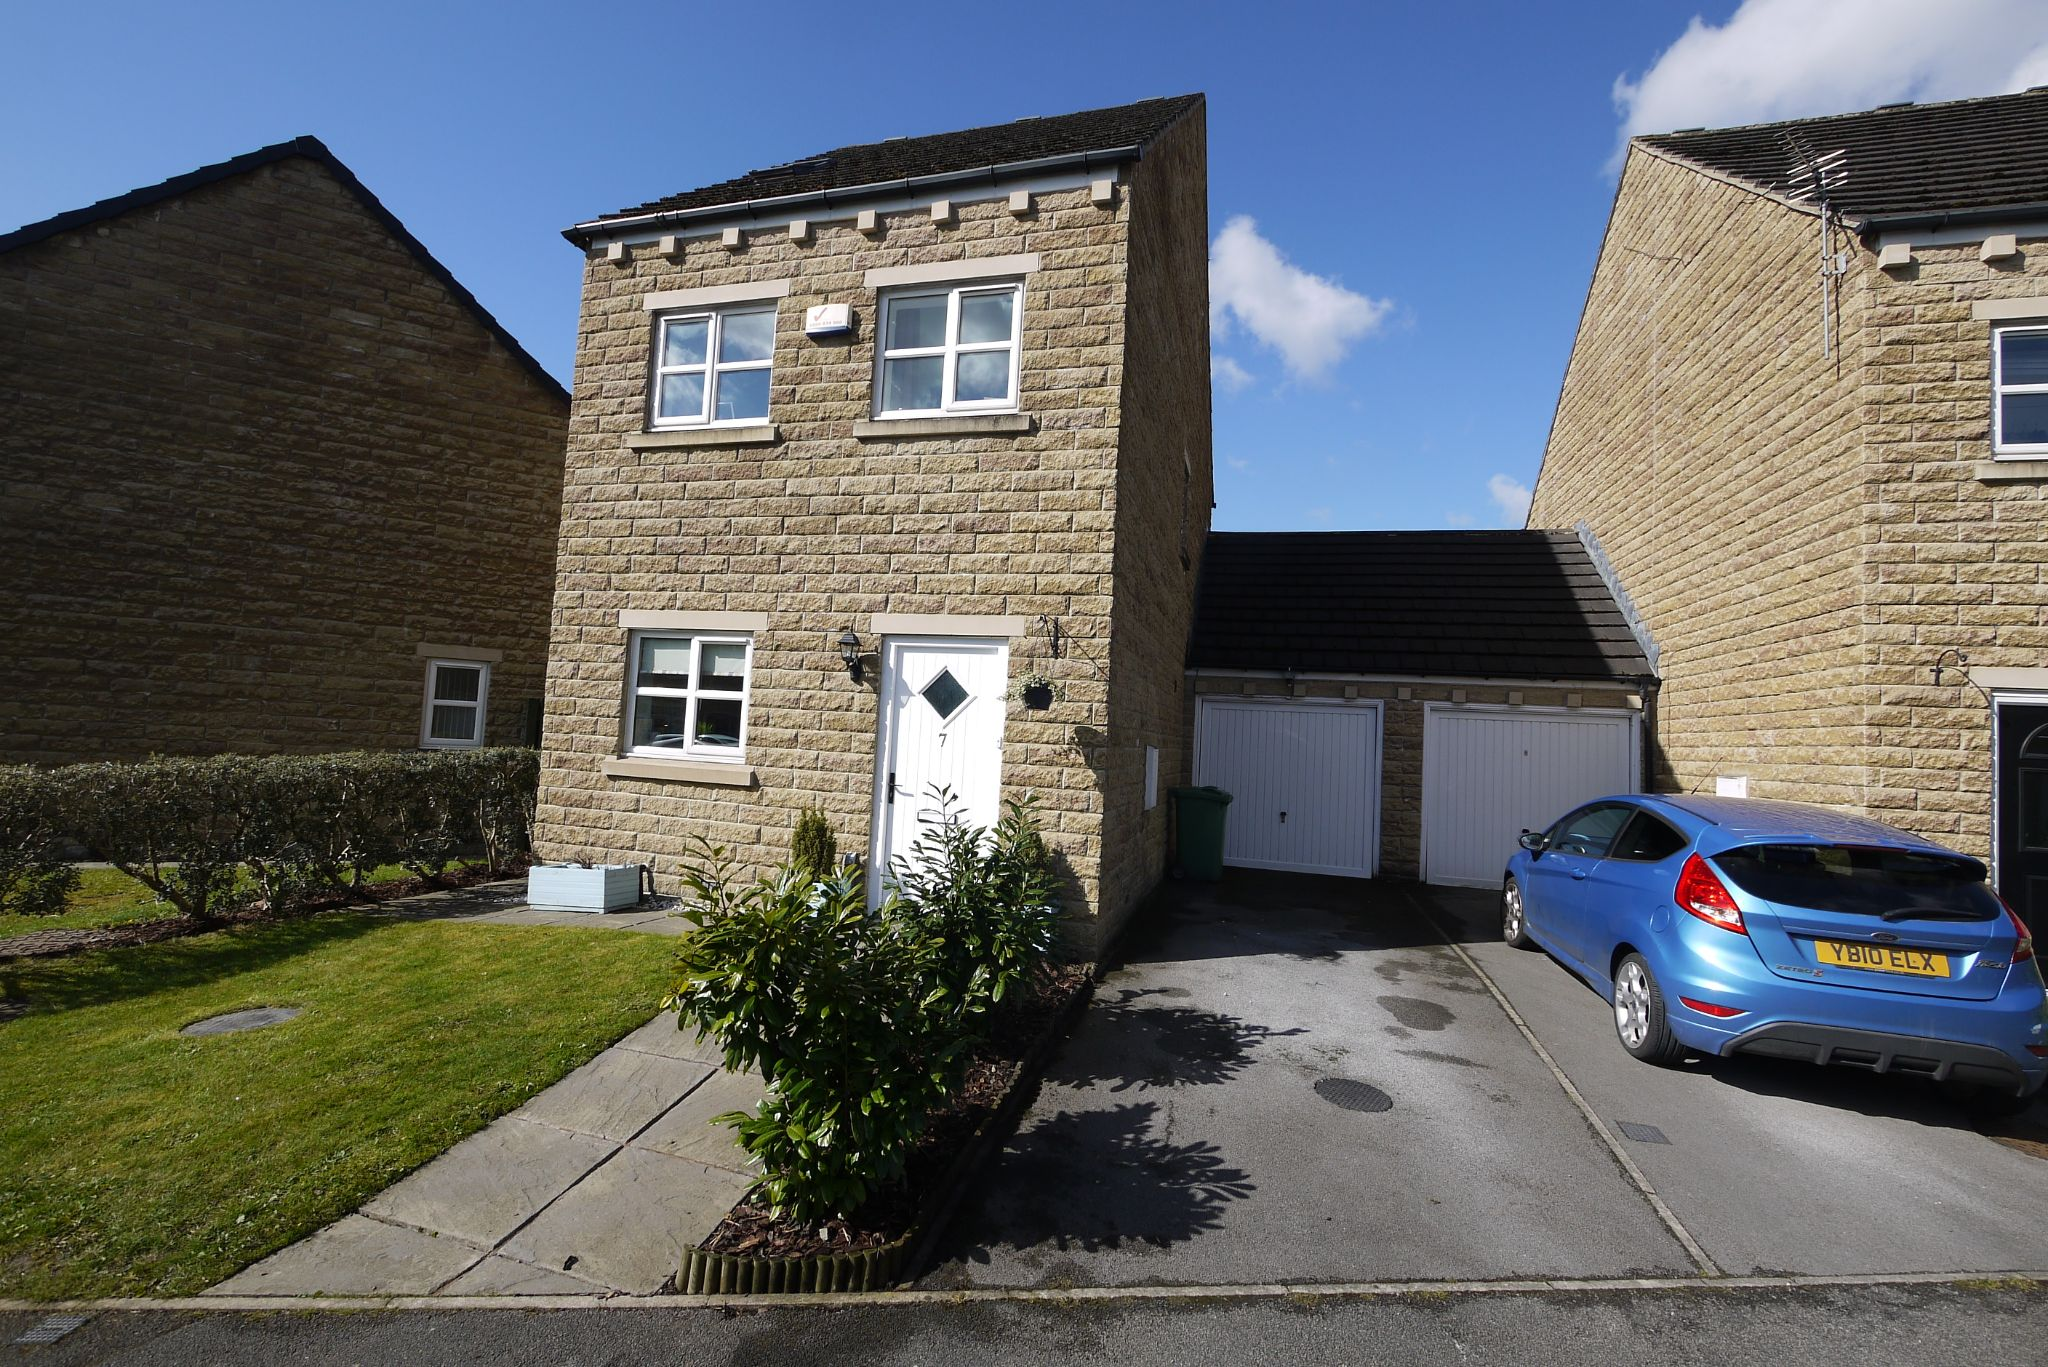 3 bedroom link detached house SSTC in Huddersfield - Photograph 1.